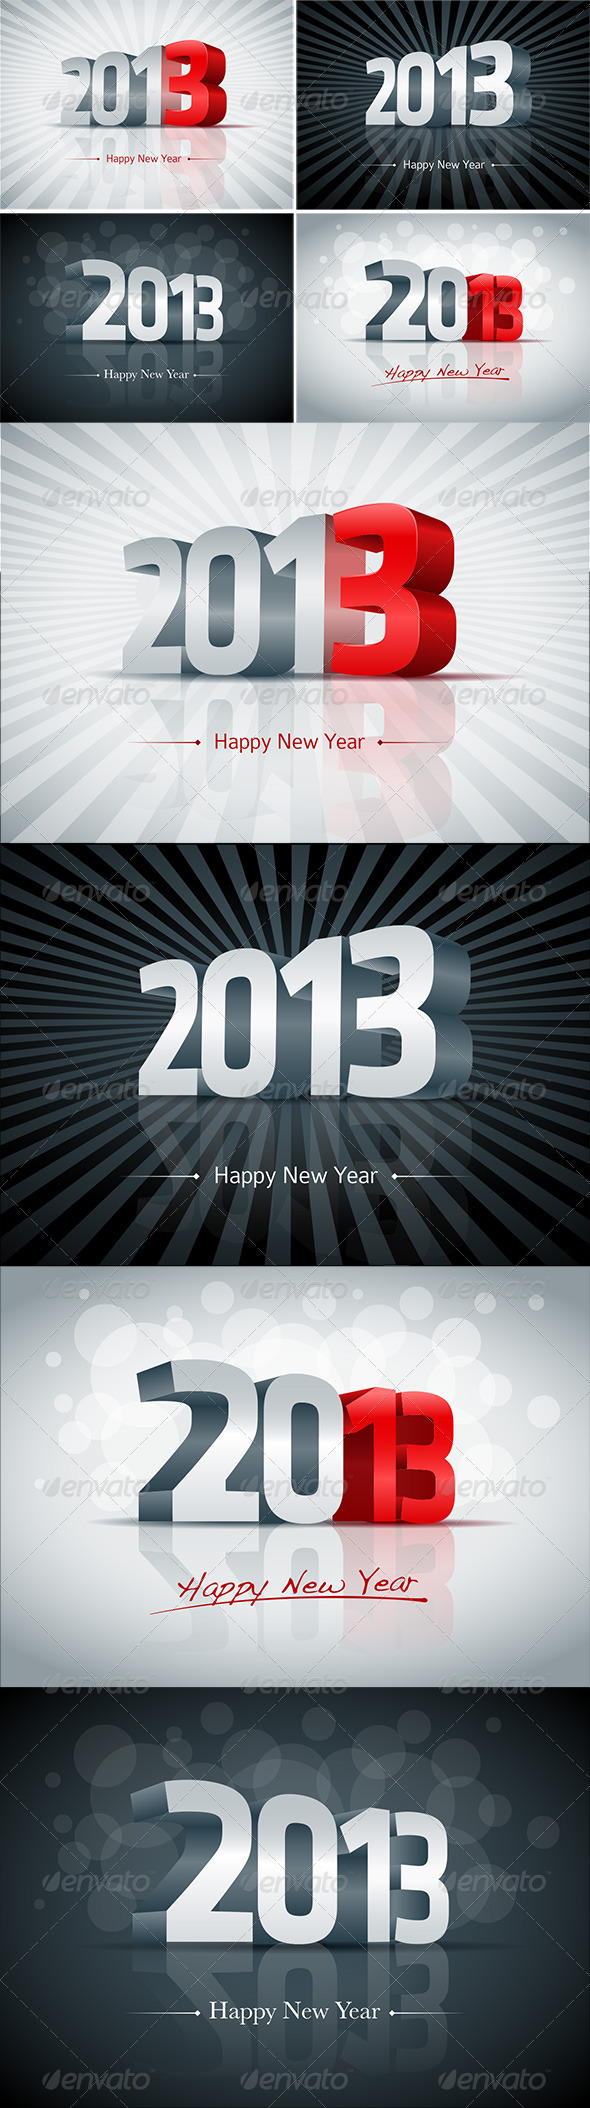 GraphicRiver 3D 2013 Set 3070806